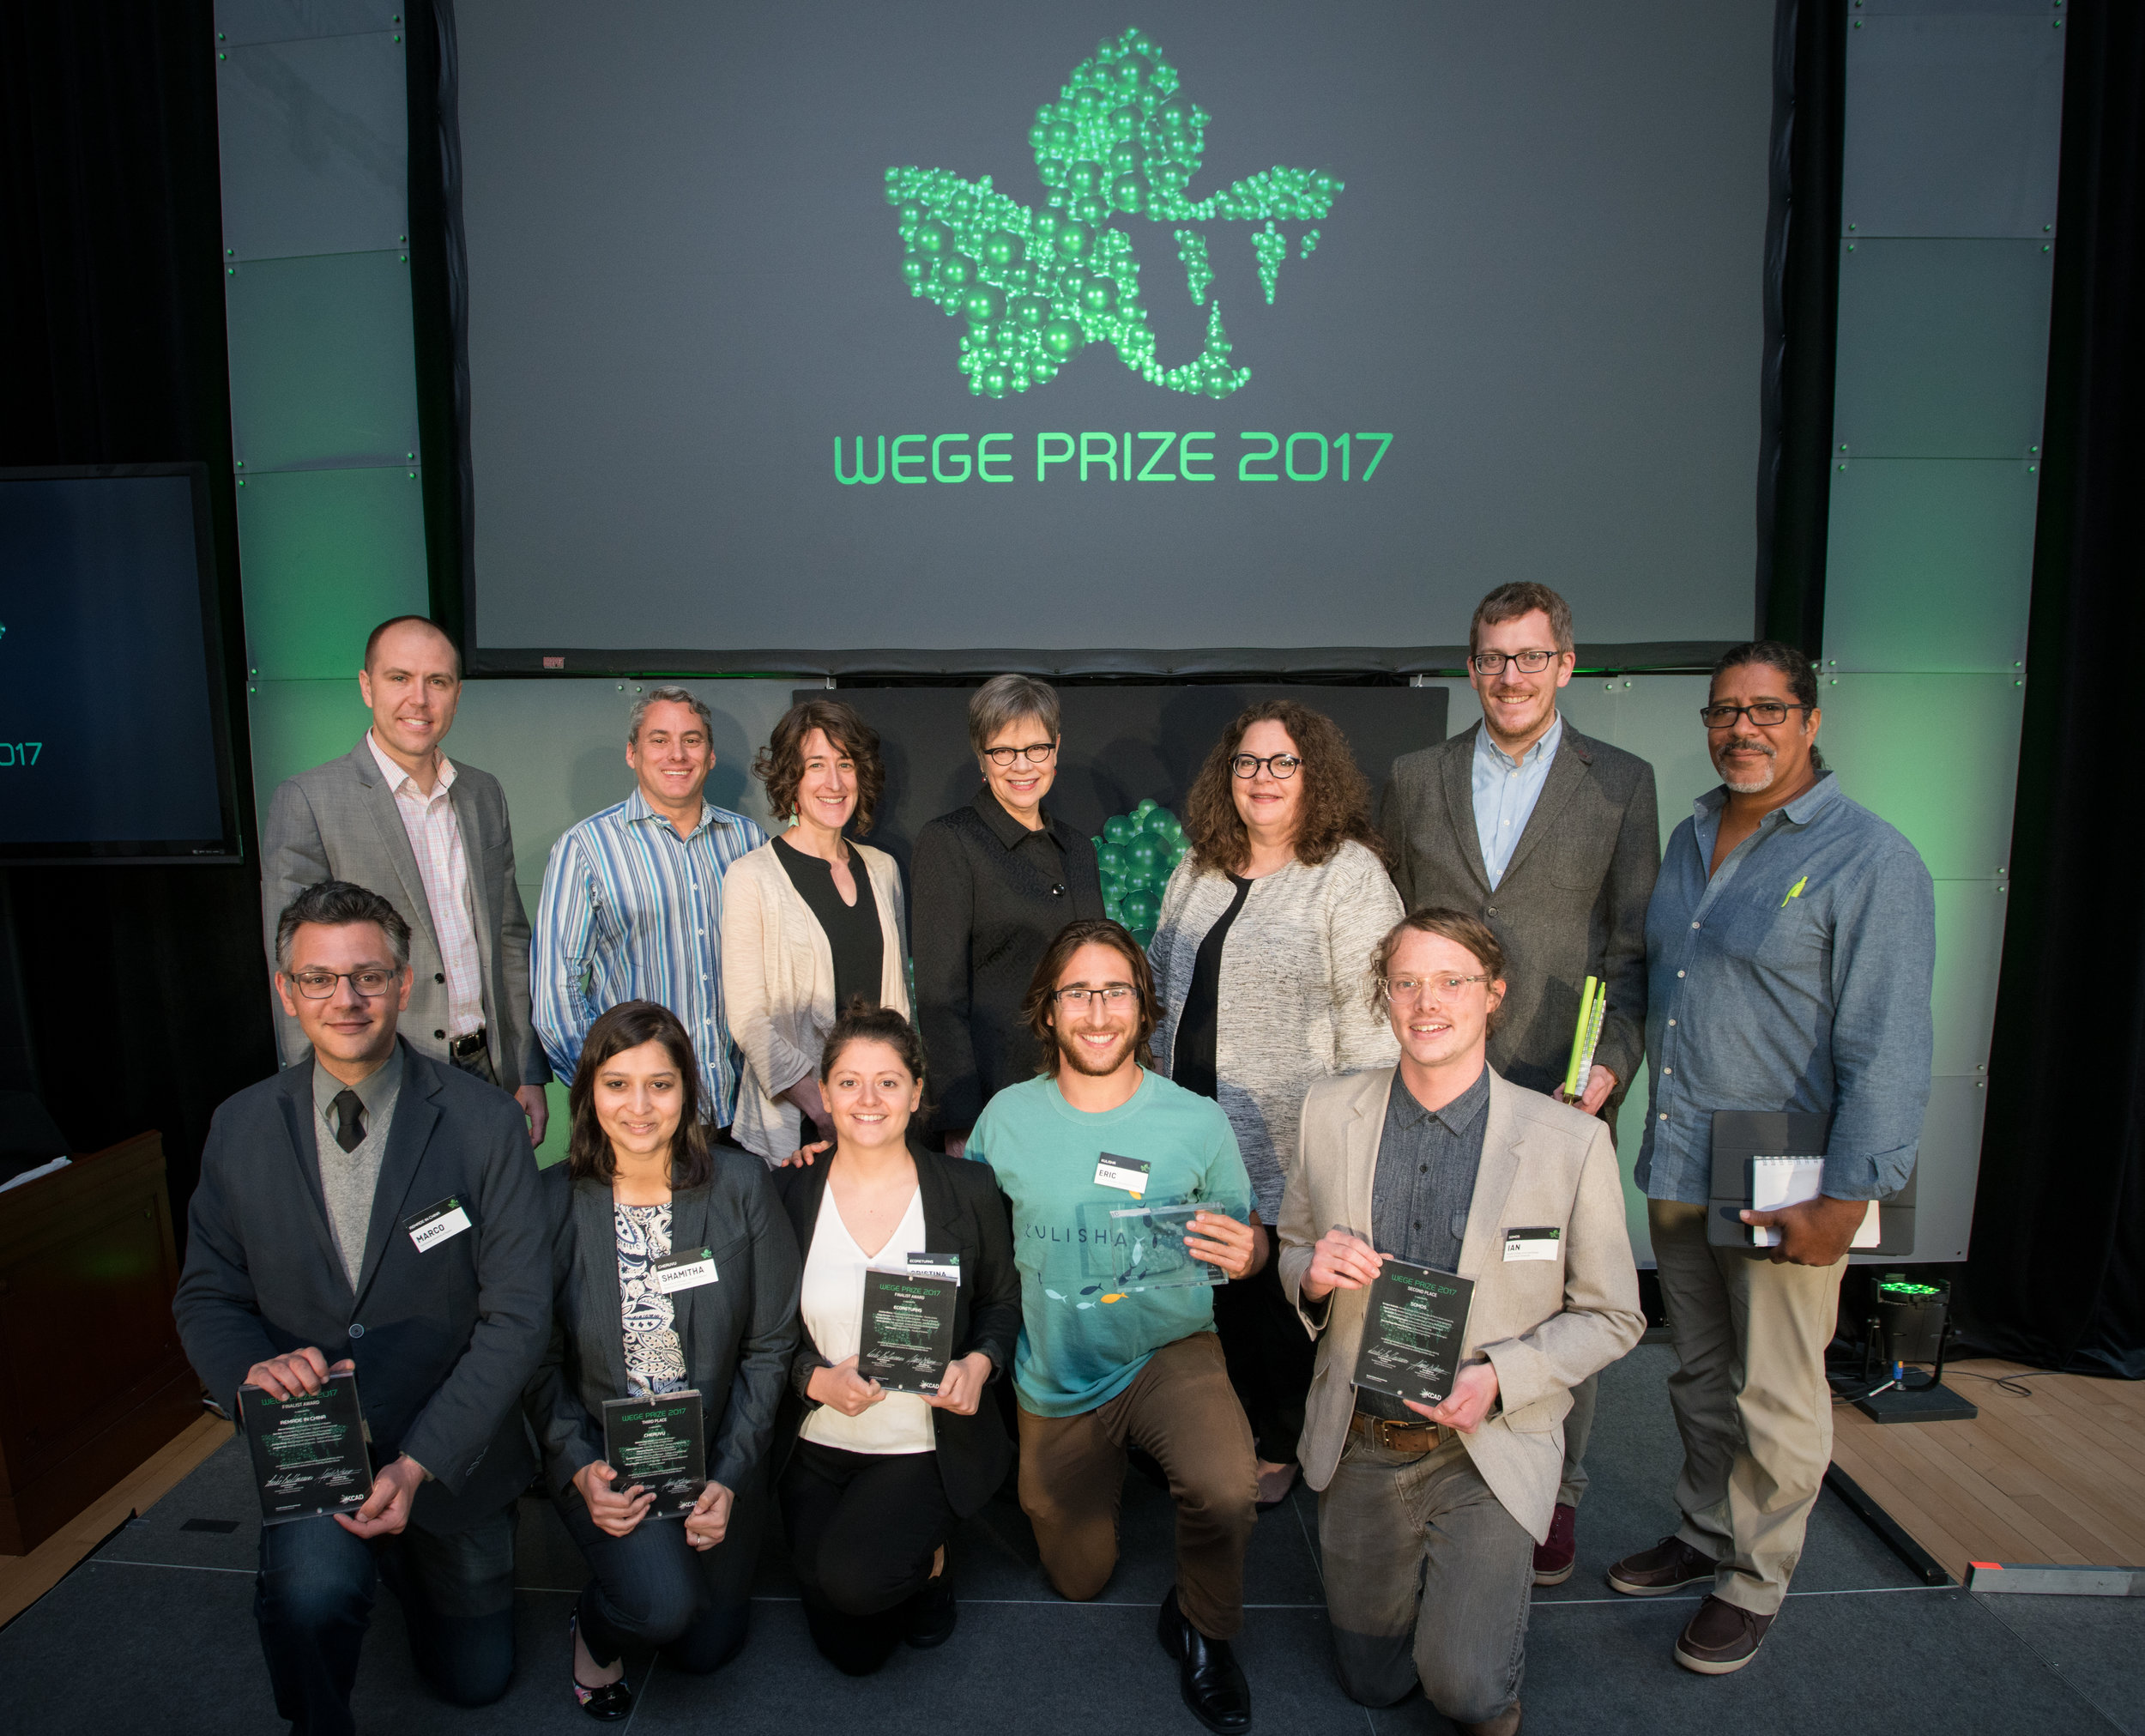 Wege Prize 2017 winners and judges